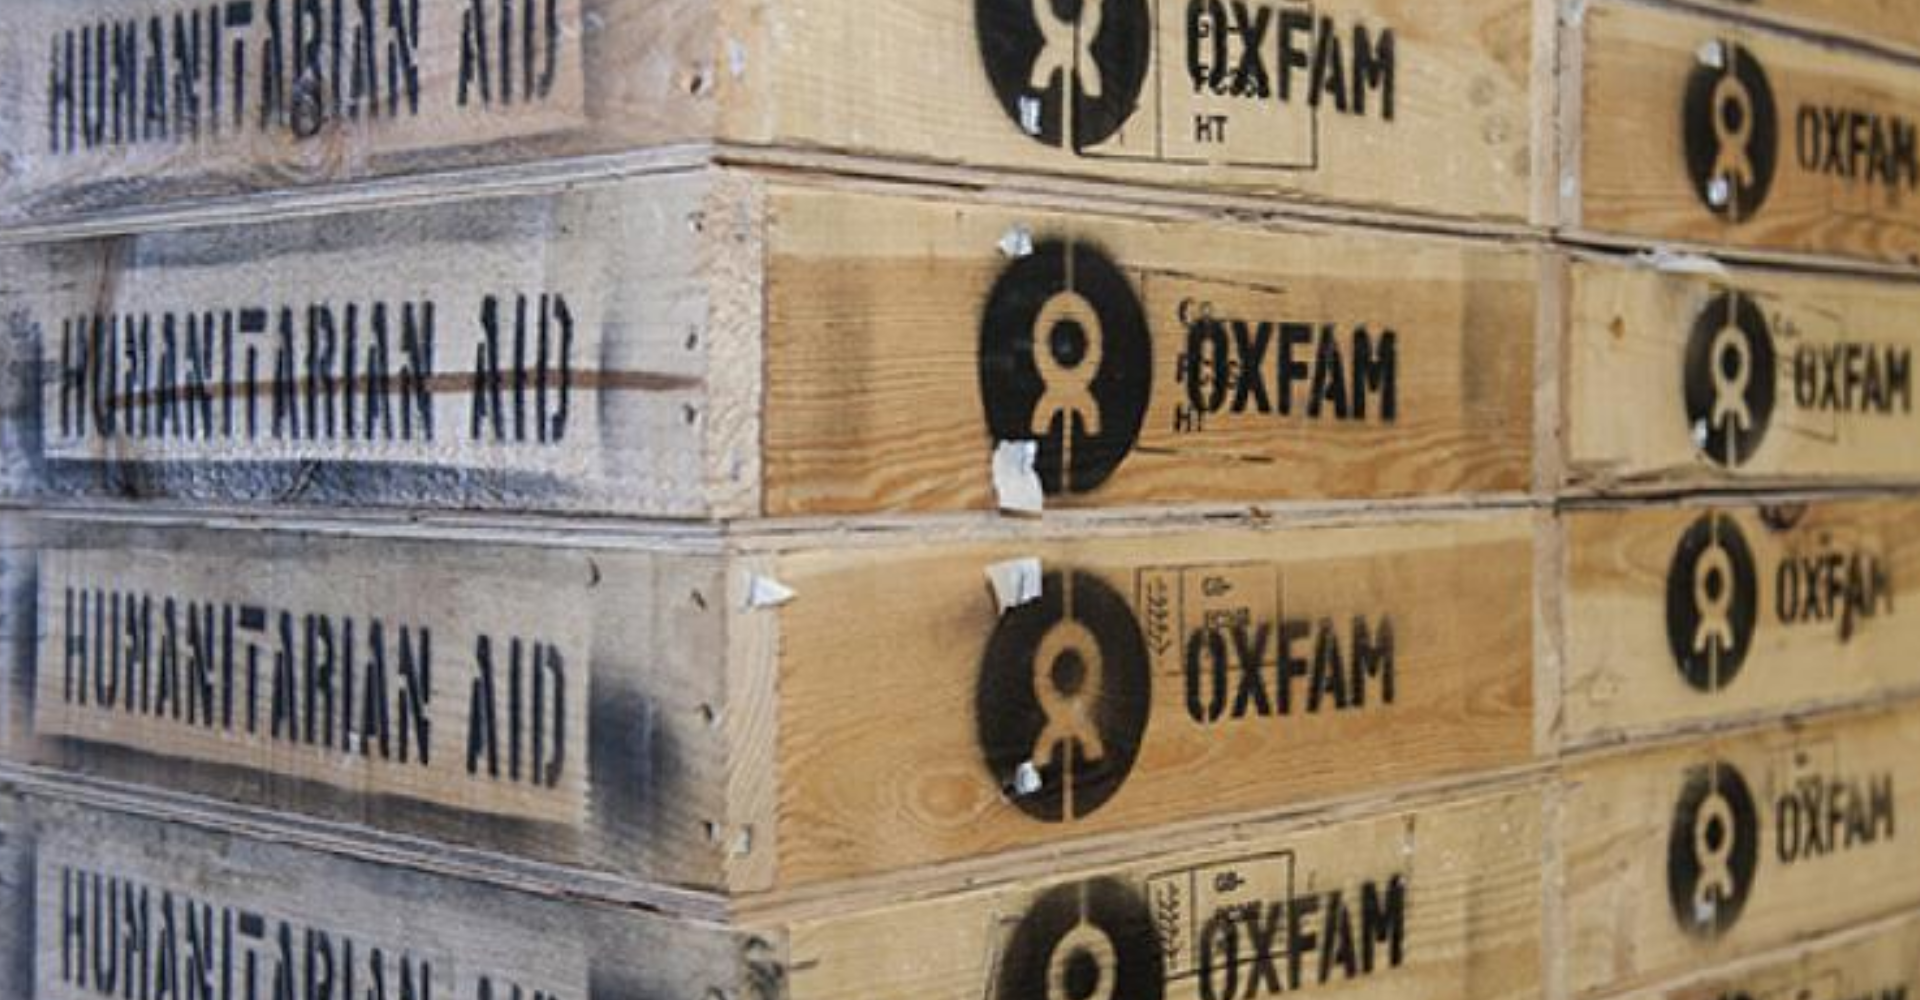 Oxfam Aid Image